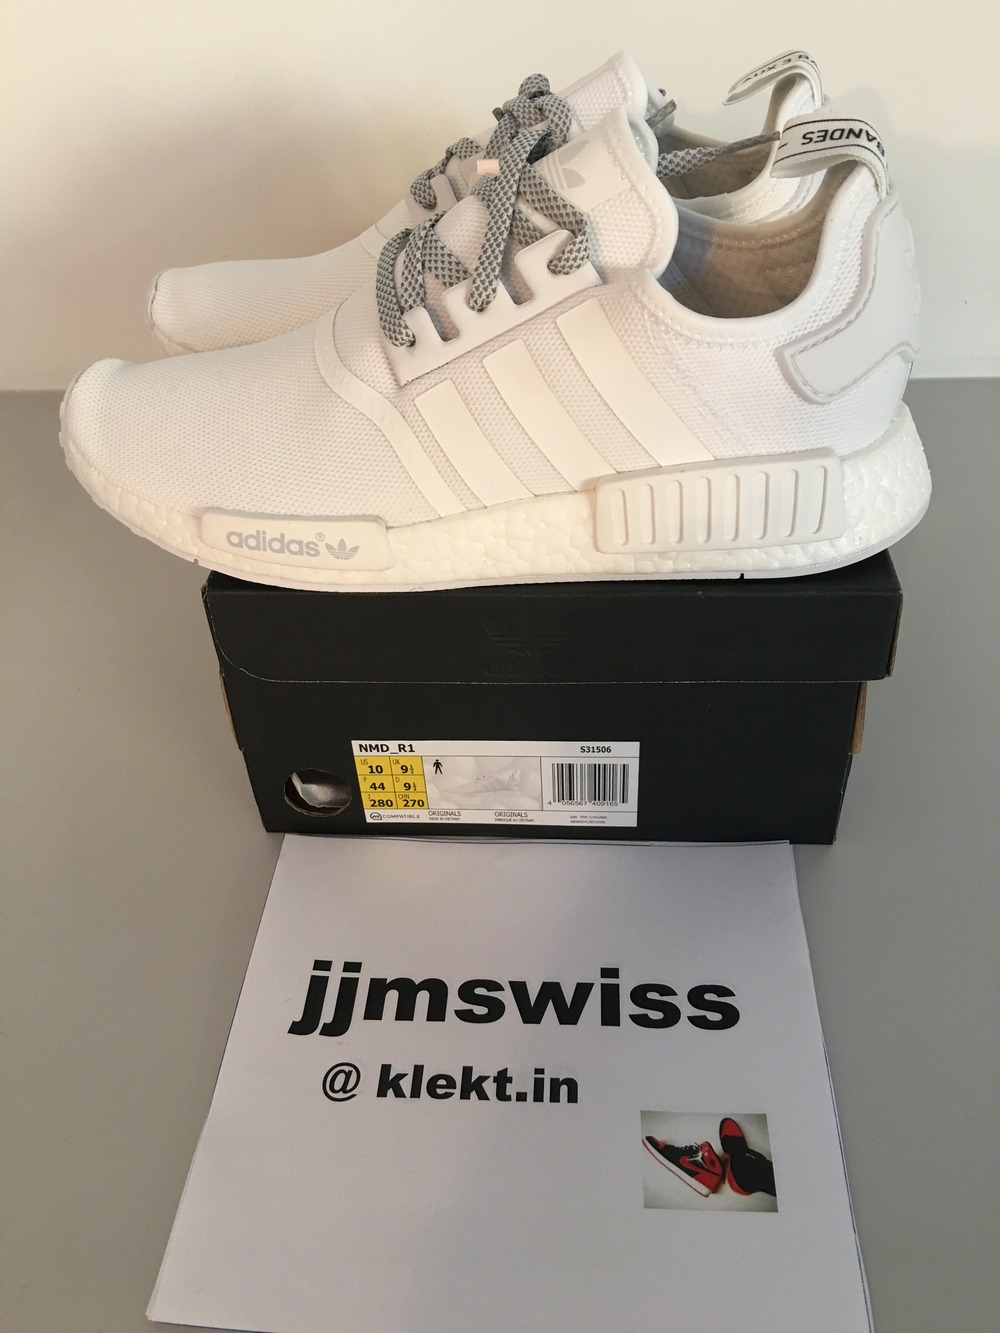 adidas NMD R1 Pink Grey, Women's Fashion, Shoes on Carousell